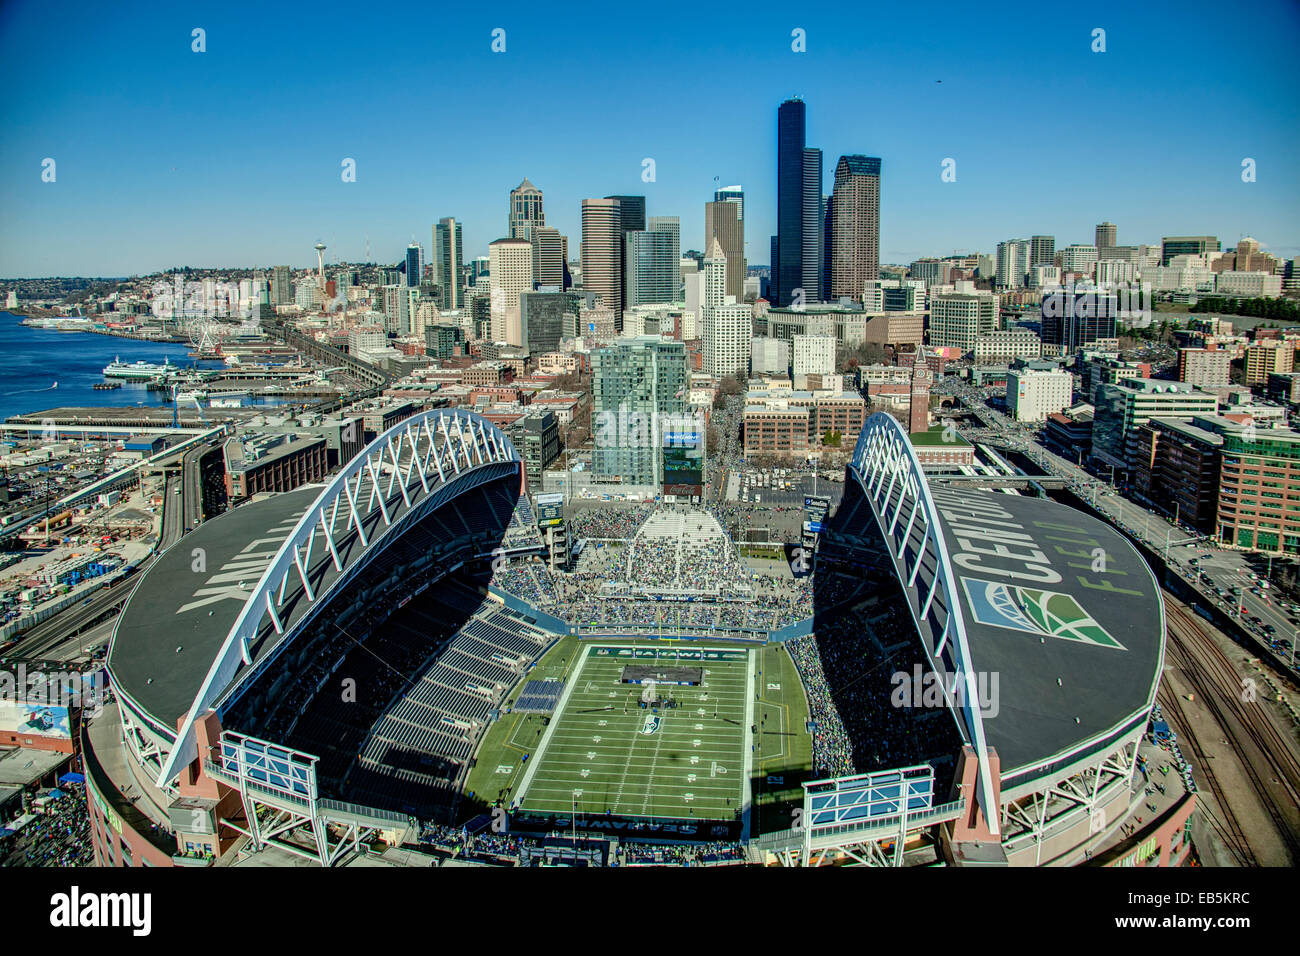 Seahawks Stadium Seattle Washington Usa Stock Photo Alamy